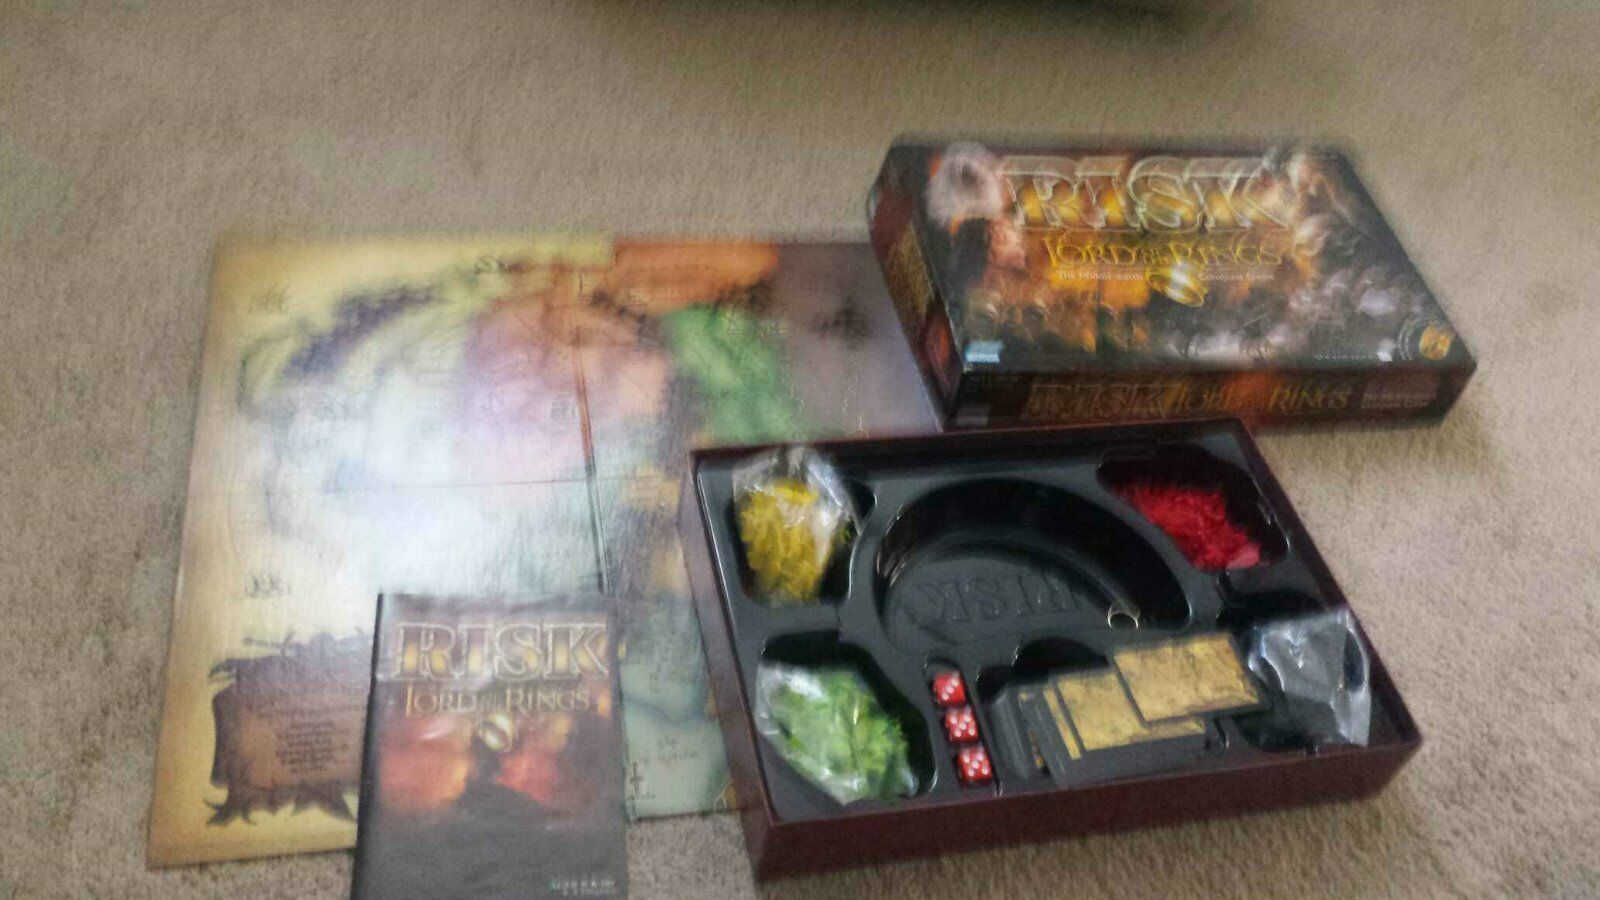 Games - Electronic Battleship and Risk Lord of the Rings Version